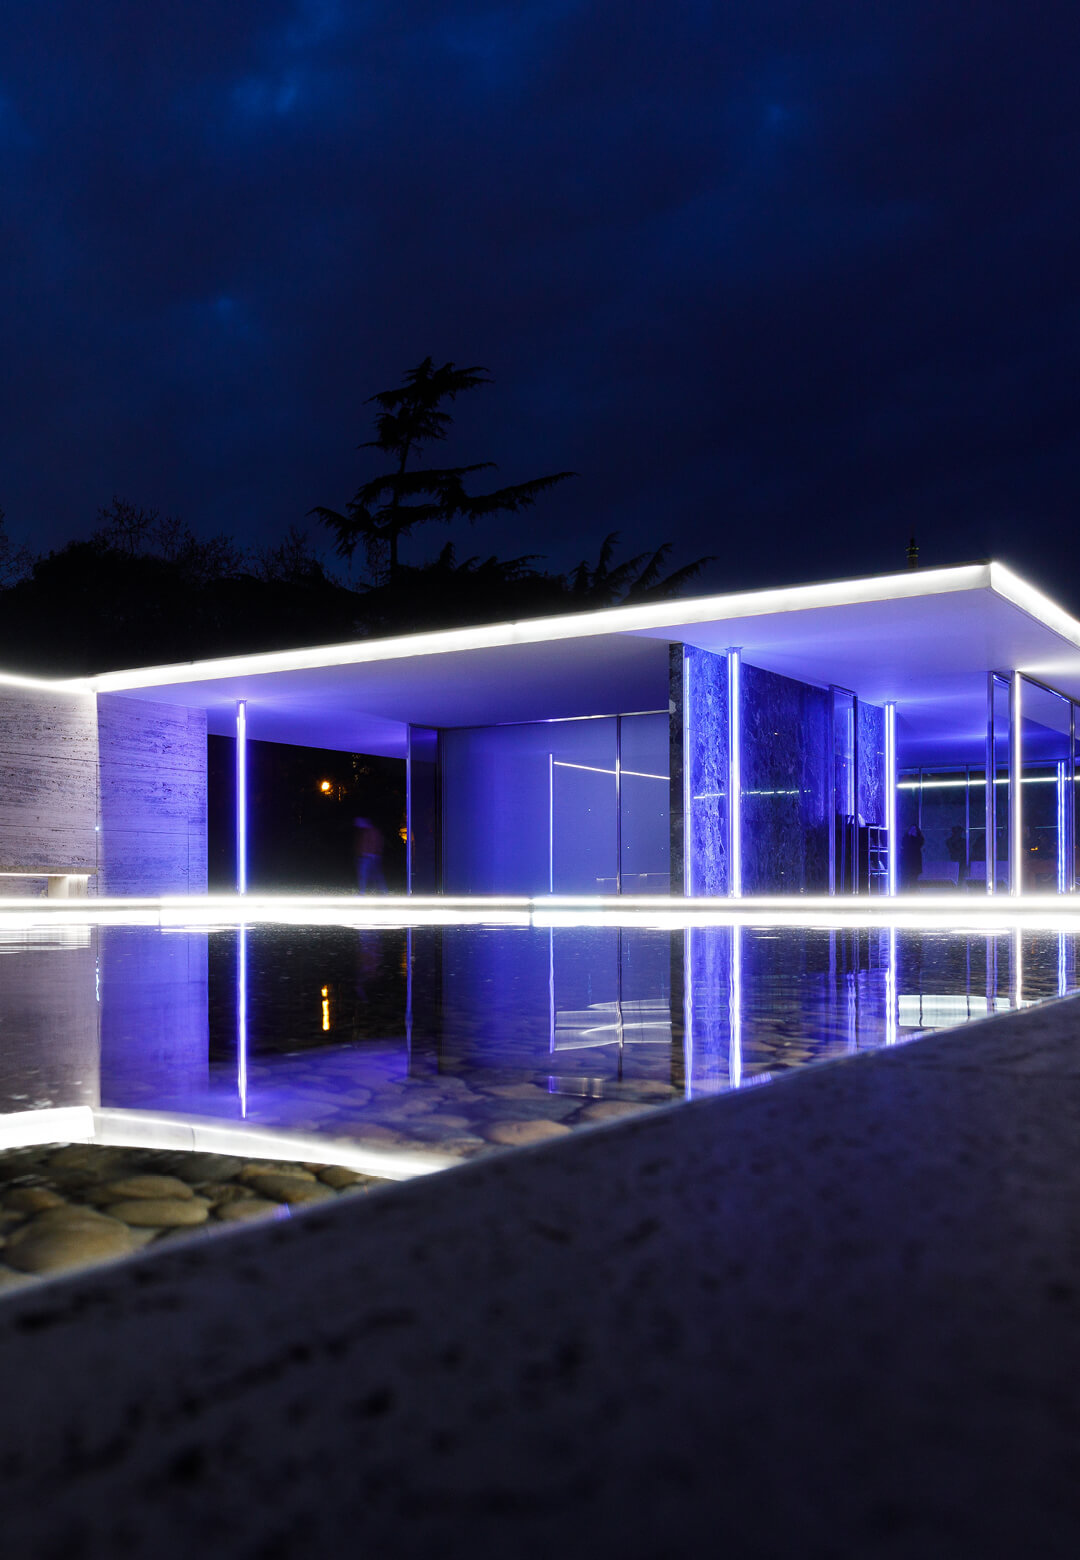 A view of the Barcelona Pavilion illuminated as part of 'Big Bang Building Light!' by Mario Pasqualotto | Big Bang Building Light! | Mario Pasqualotto | STIRworld